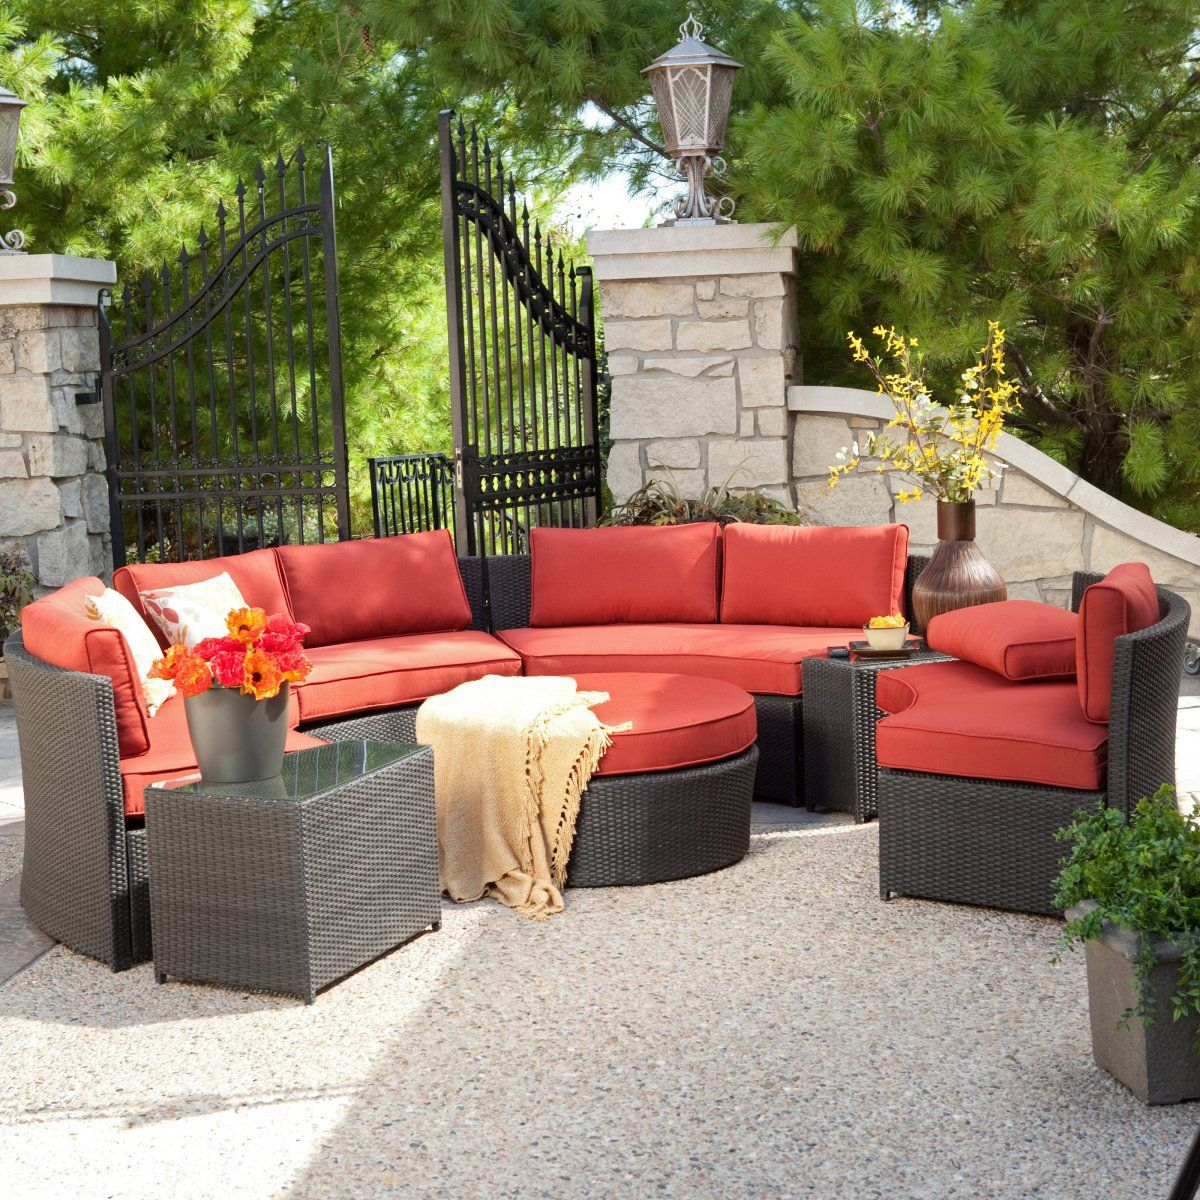 Meridian All Weather Wicker Sectional  Terracotta   Conversation Patio Sets  At Patio Furniture USA